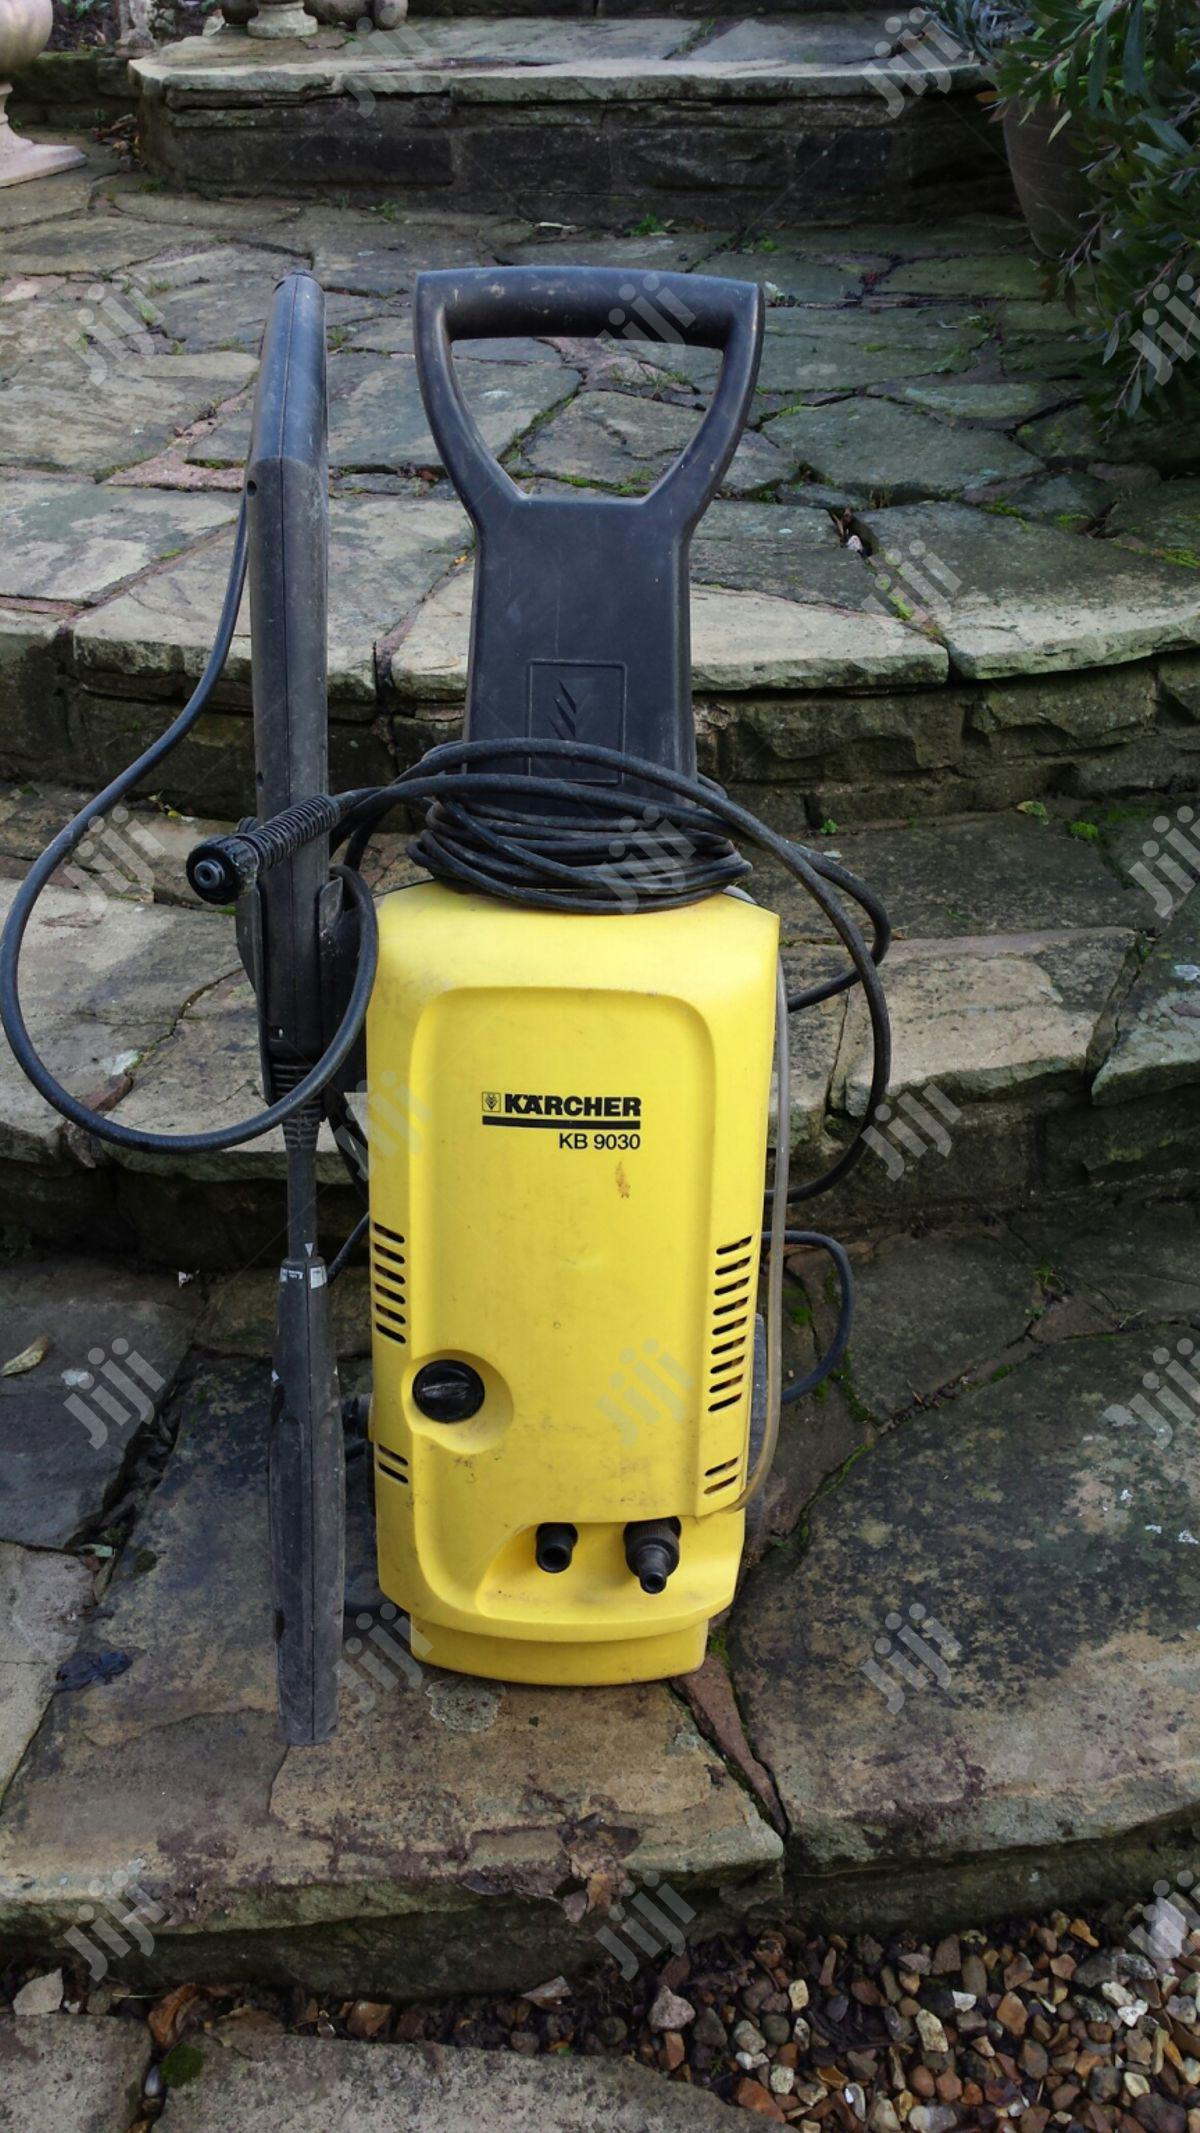 Archive: KARCHER KB 9030 Pressure Washer With Hose & Attachments